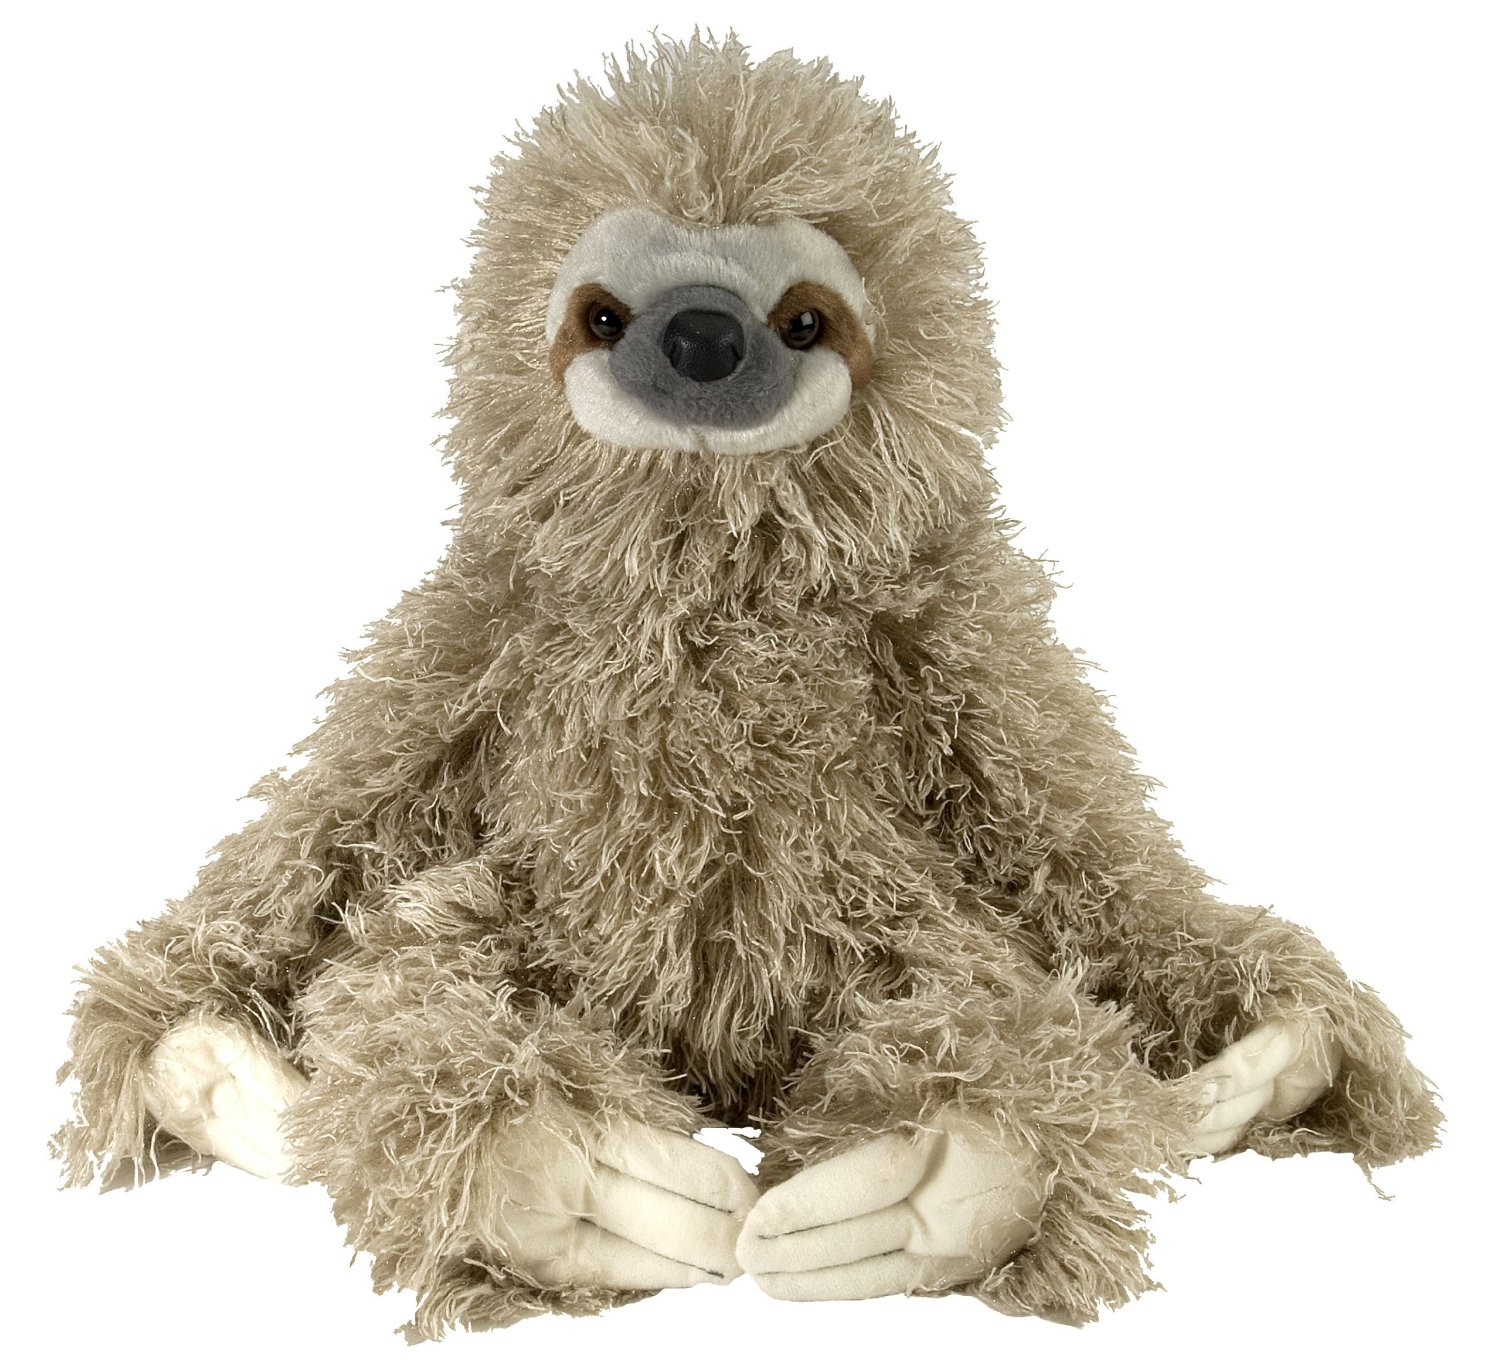 Stuffed Animal Toys : The sloth gift guide sloths